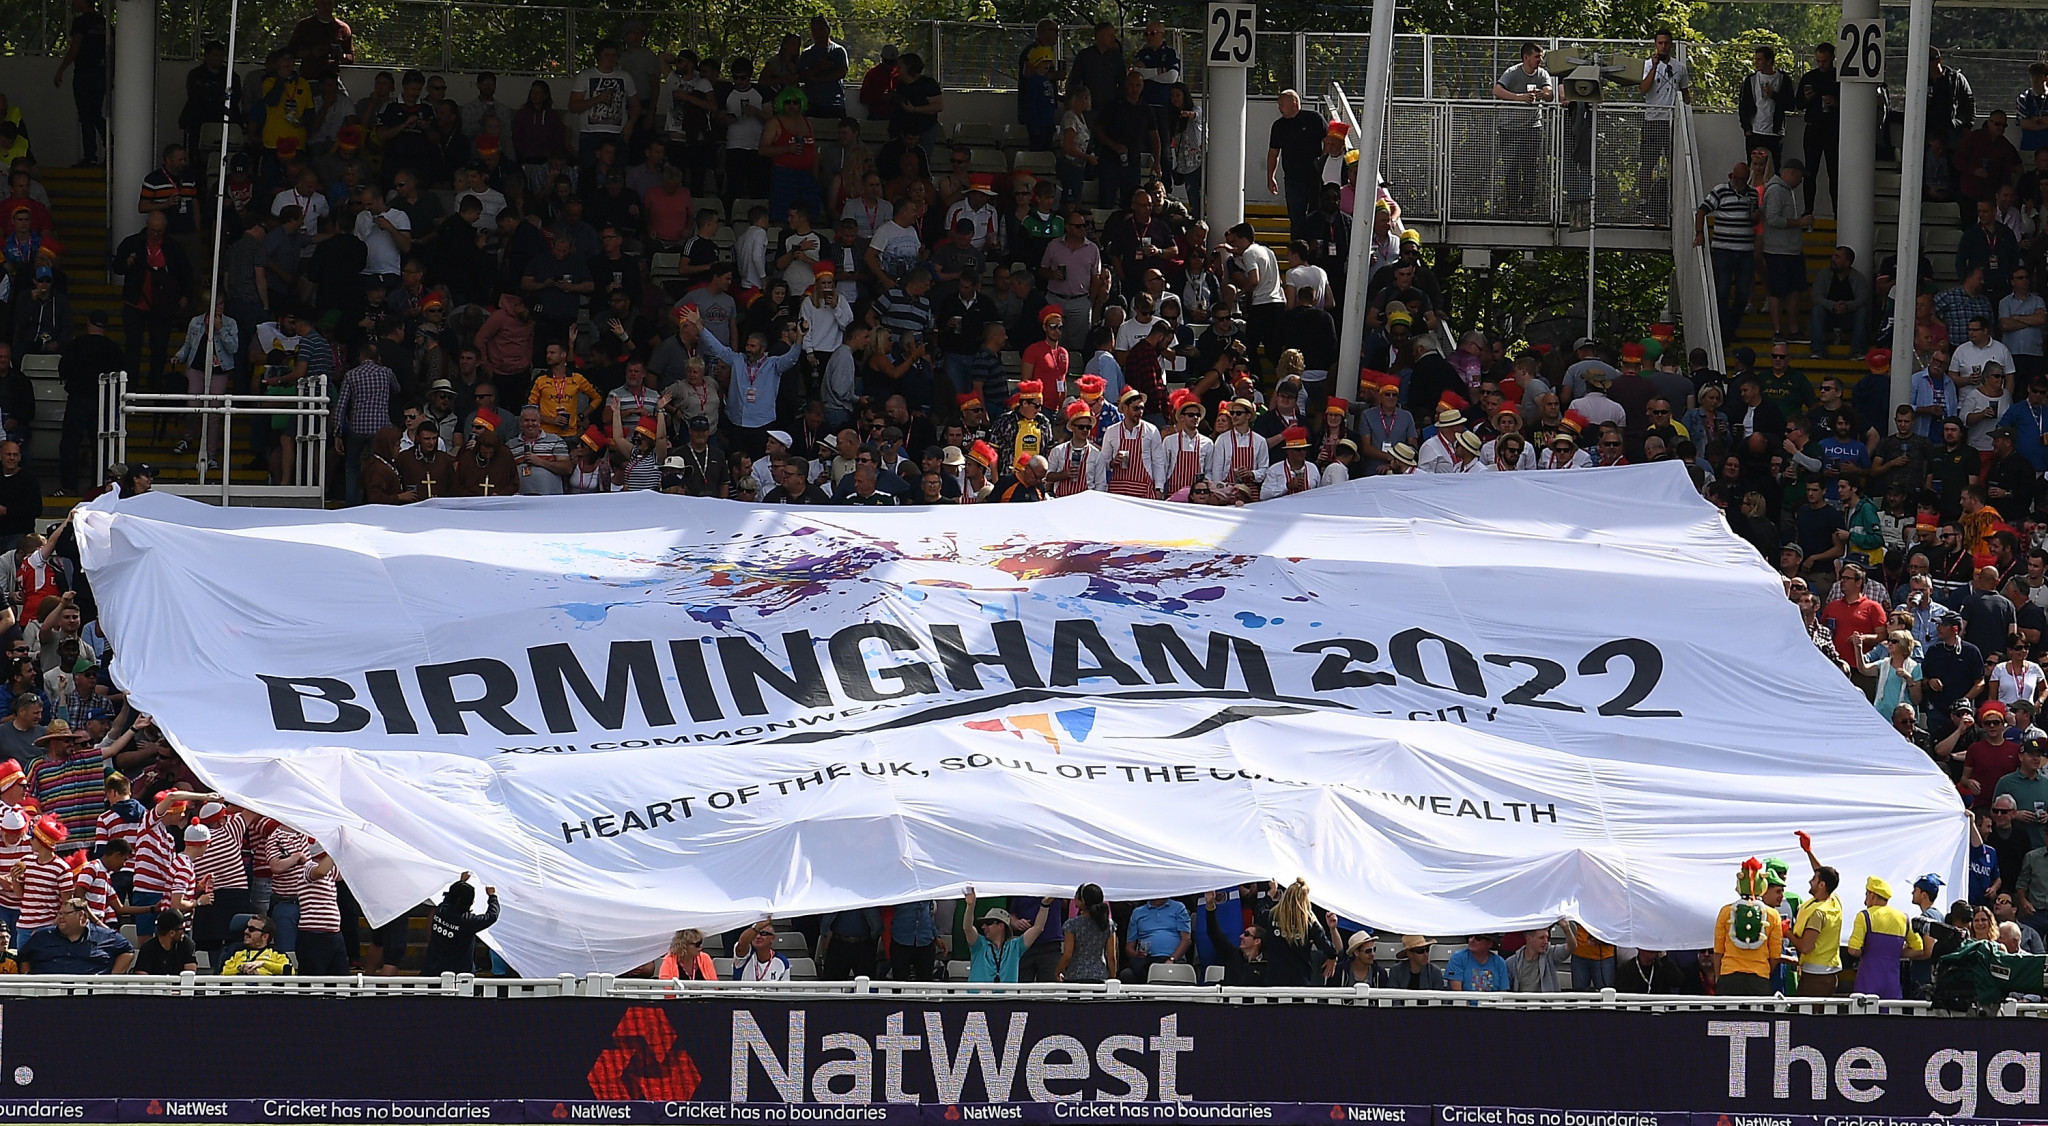 Council set to approve £2 million fund to help people celebrate Birmingham 2022